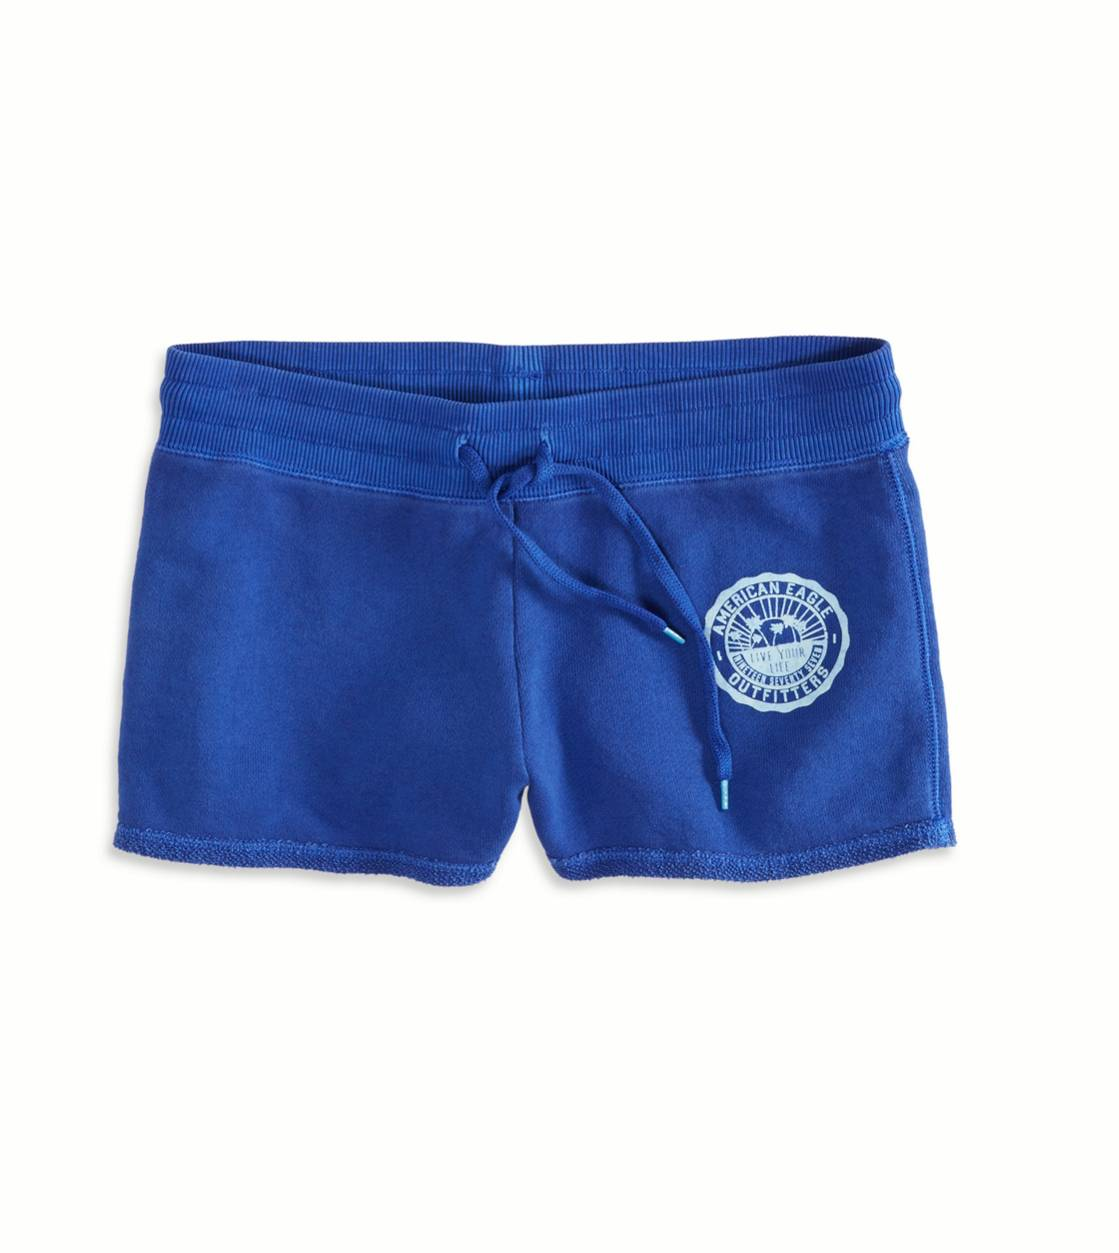 Electric Cobalt AE Signature Graphic Sweatshort